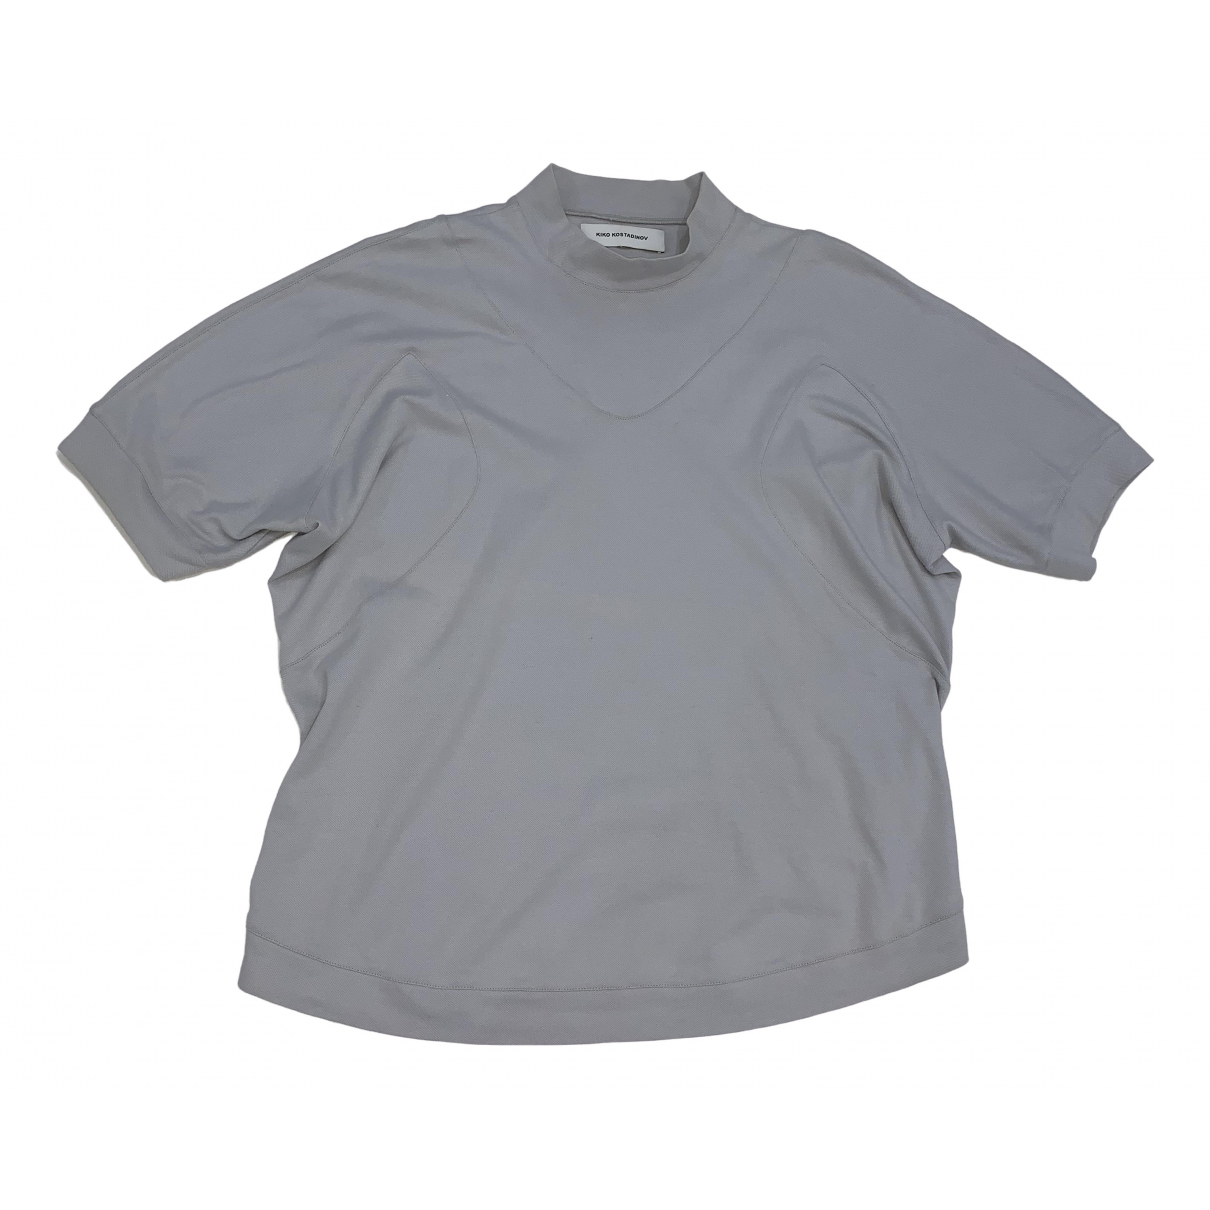 Kiko Kostadinov \N Grey Cotton T-shirts for Men M International